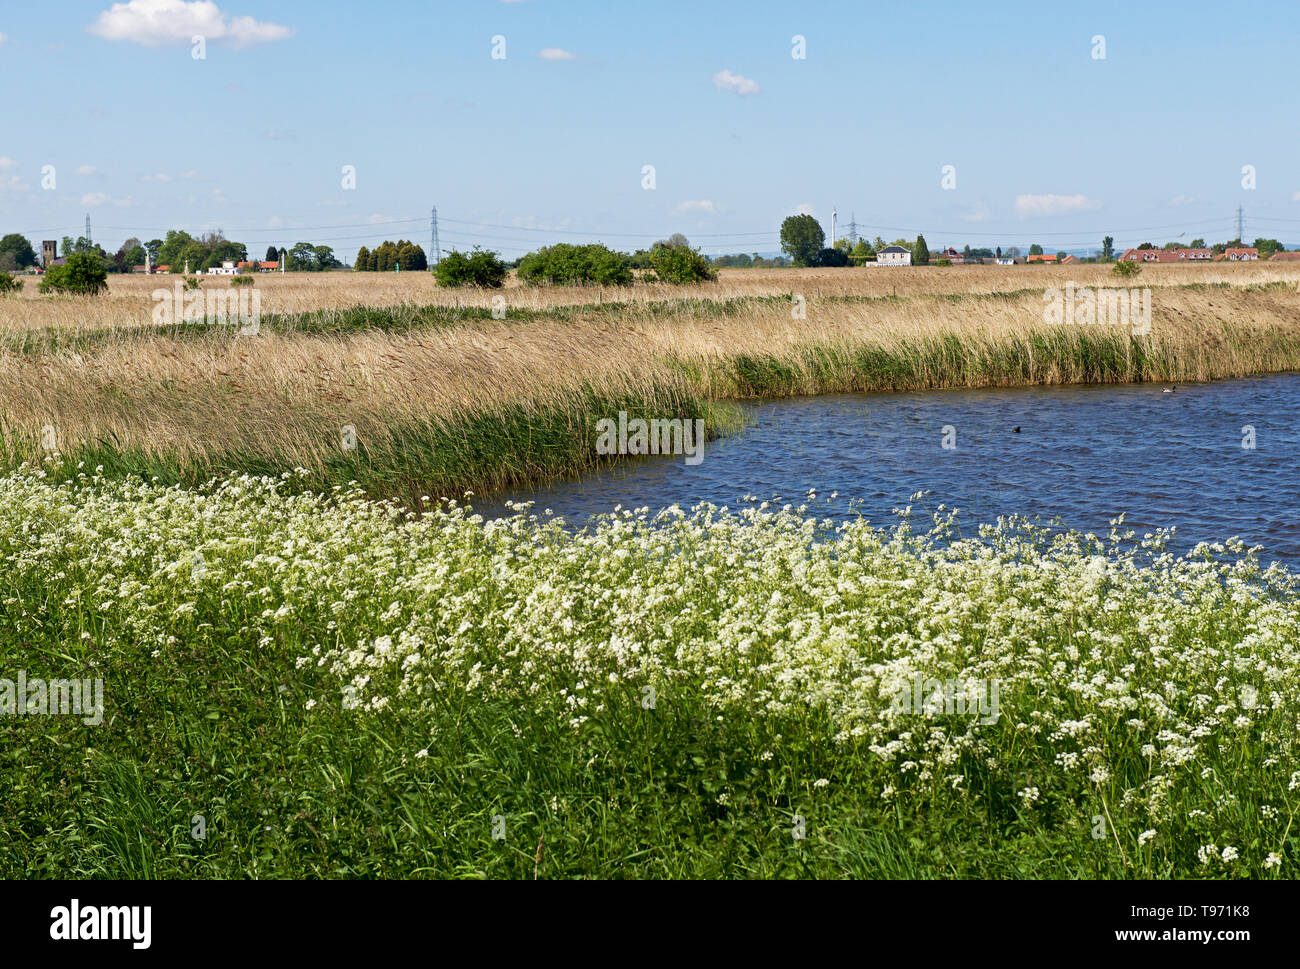 Blacktoft Sands, RSPB Nature Reserve, East Yorkshire, England UK - Stock Image